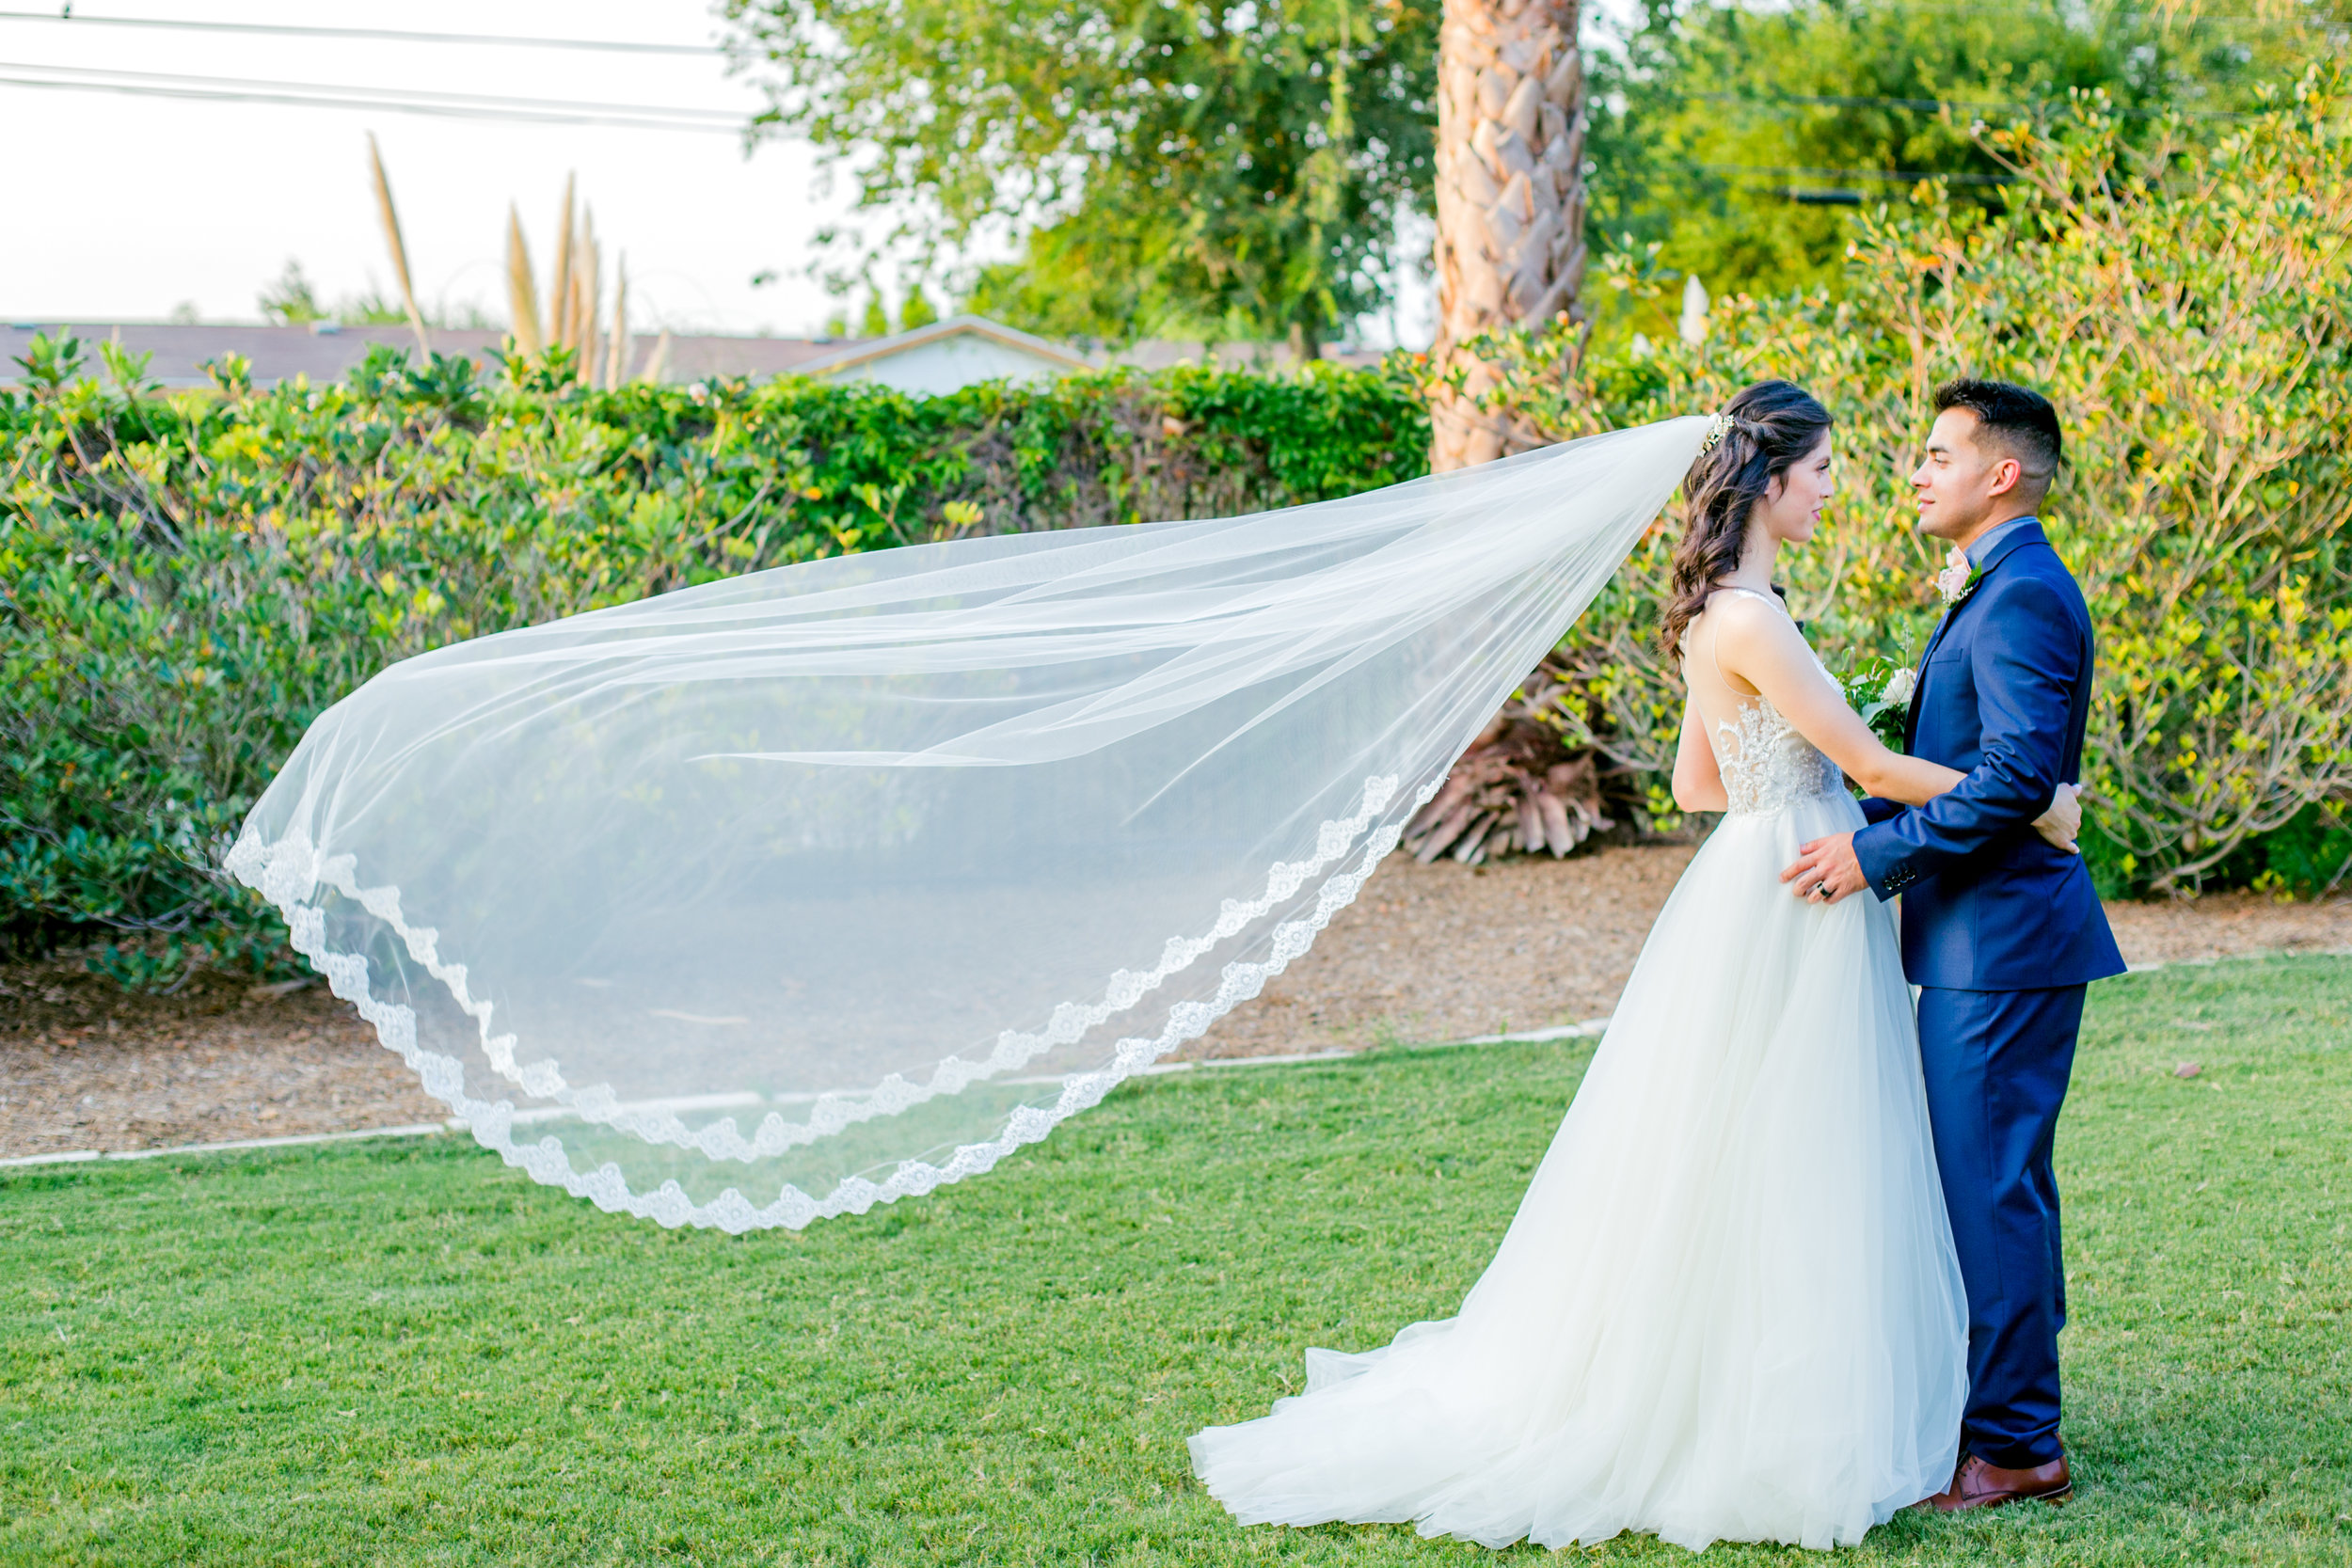 Fine Bridal Gowns In San Antonio Ornament - Wedding and flowers ...